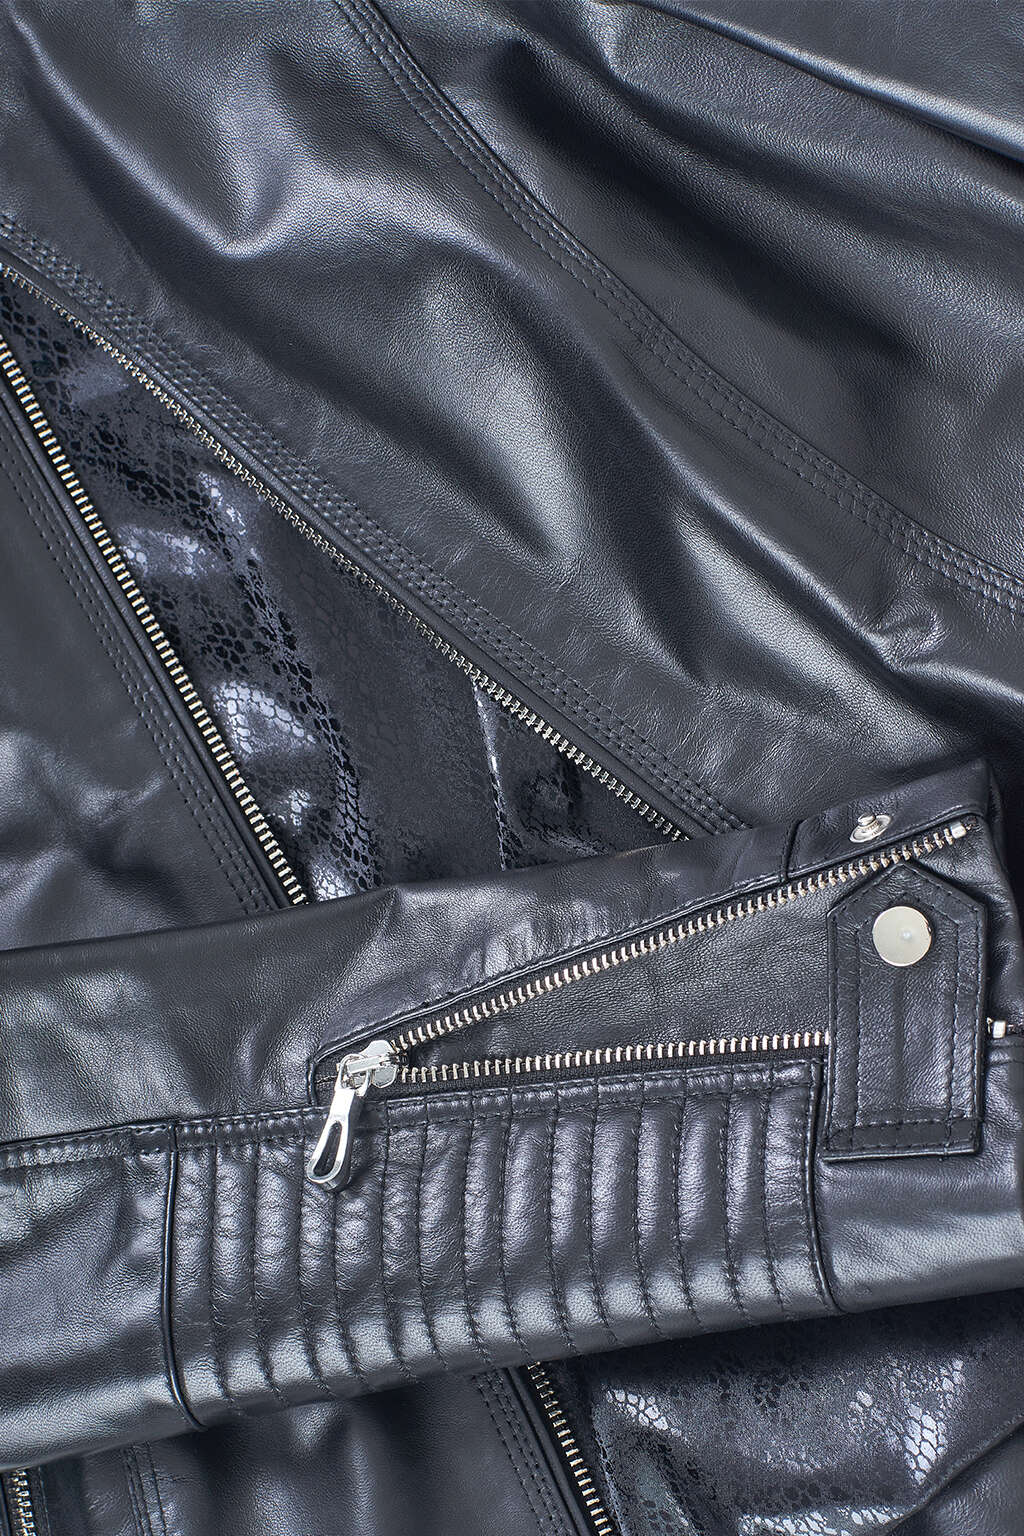 Ribbed Cuffs and Zipper Detail of Jet Black Ribbed Biker Leather Jacket